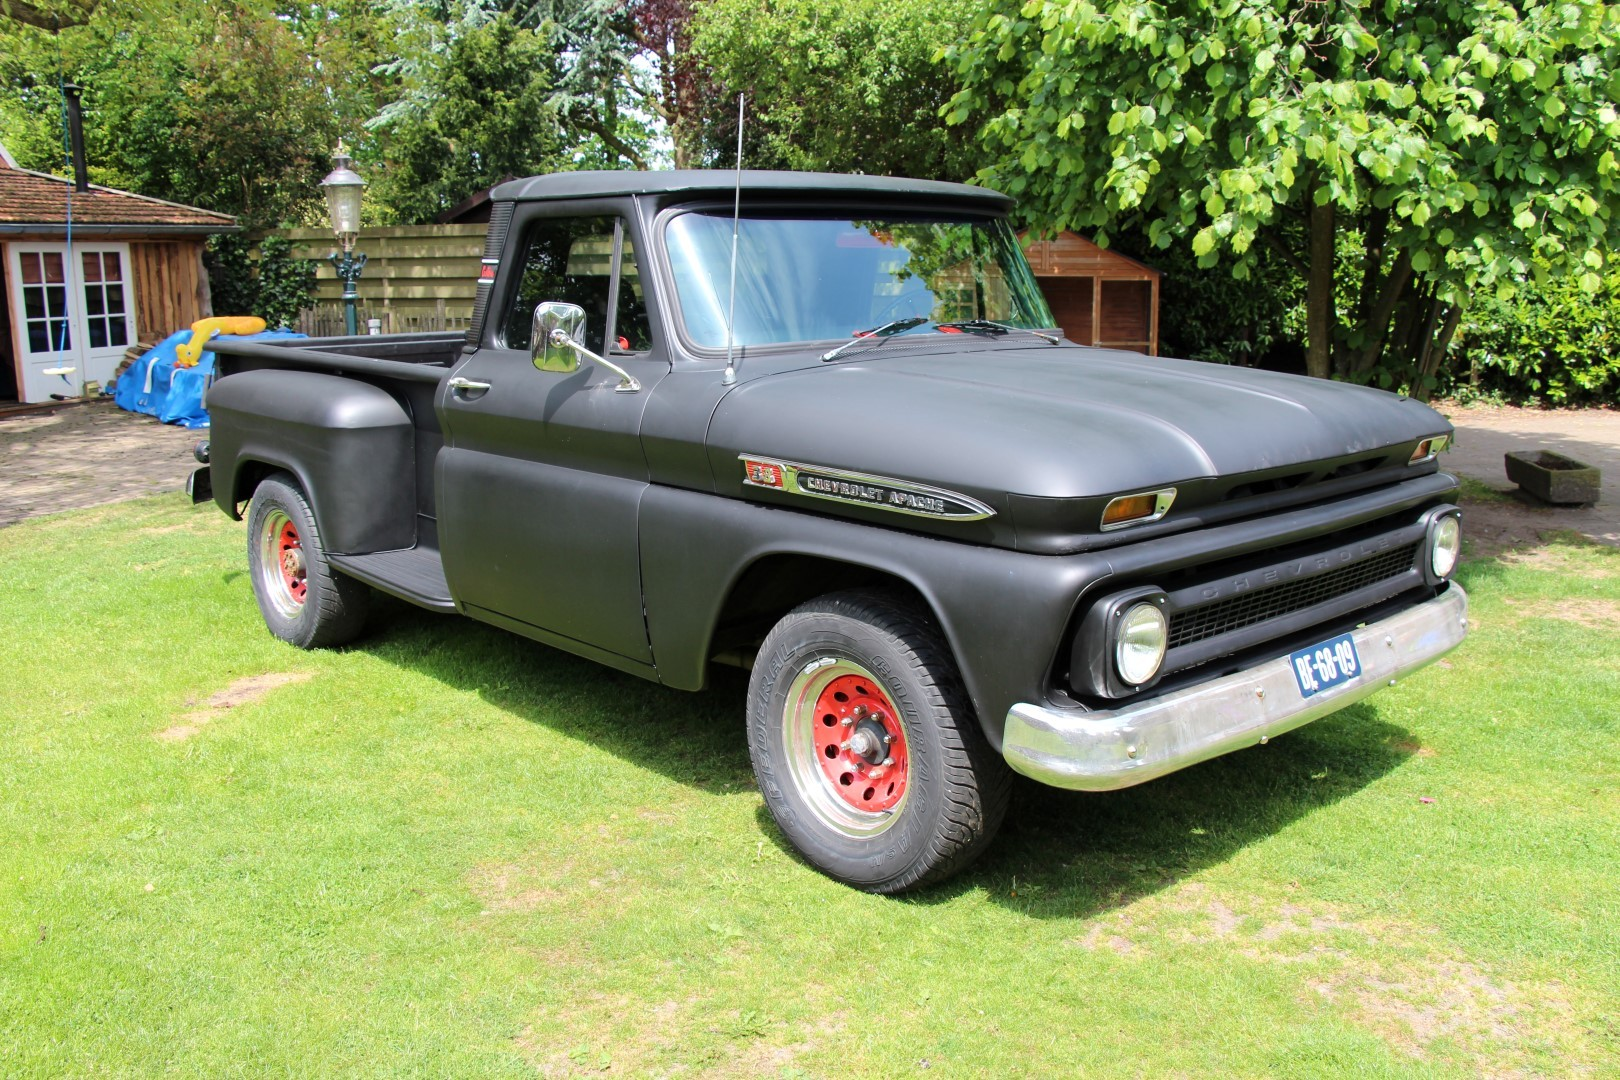 1966 chevrolet gm truck - photo #36